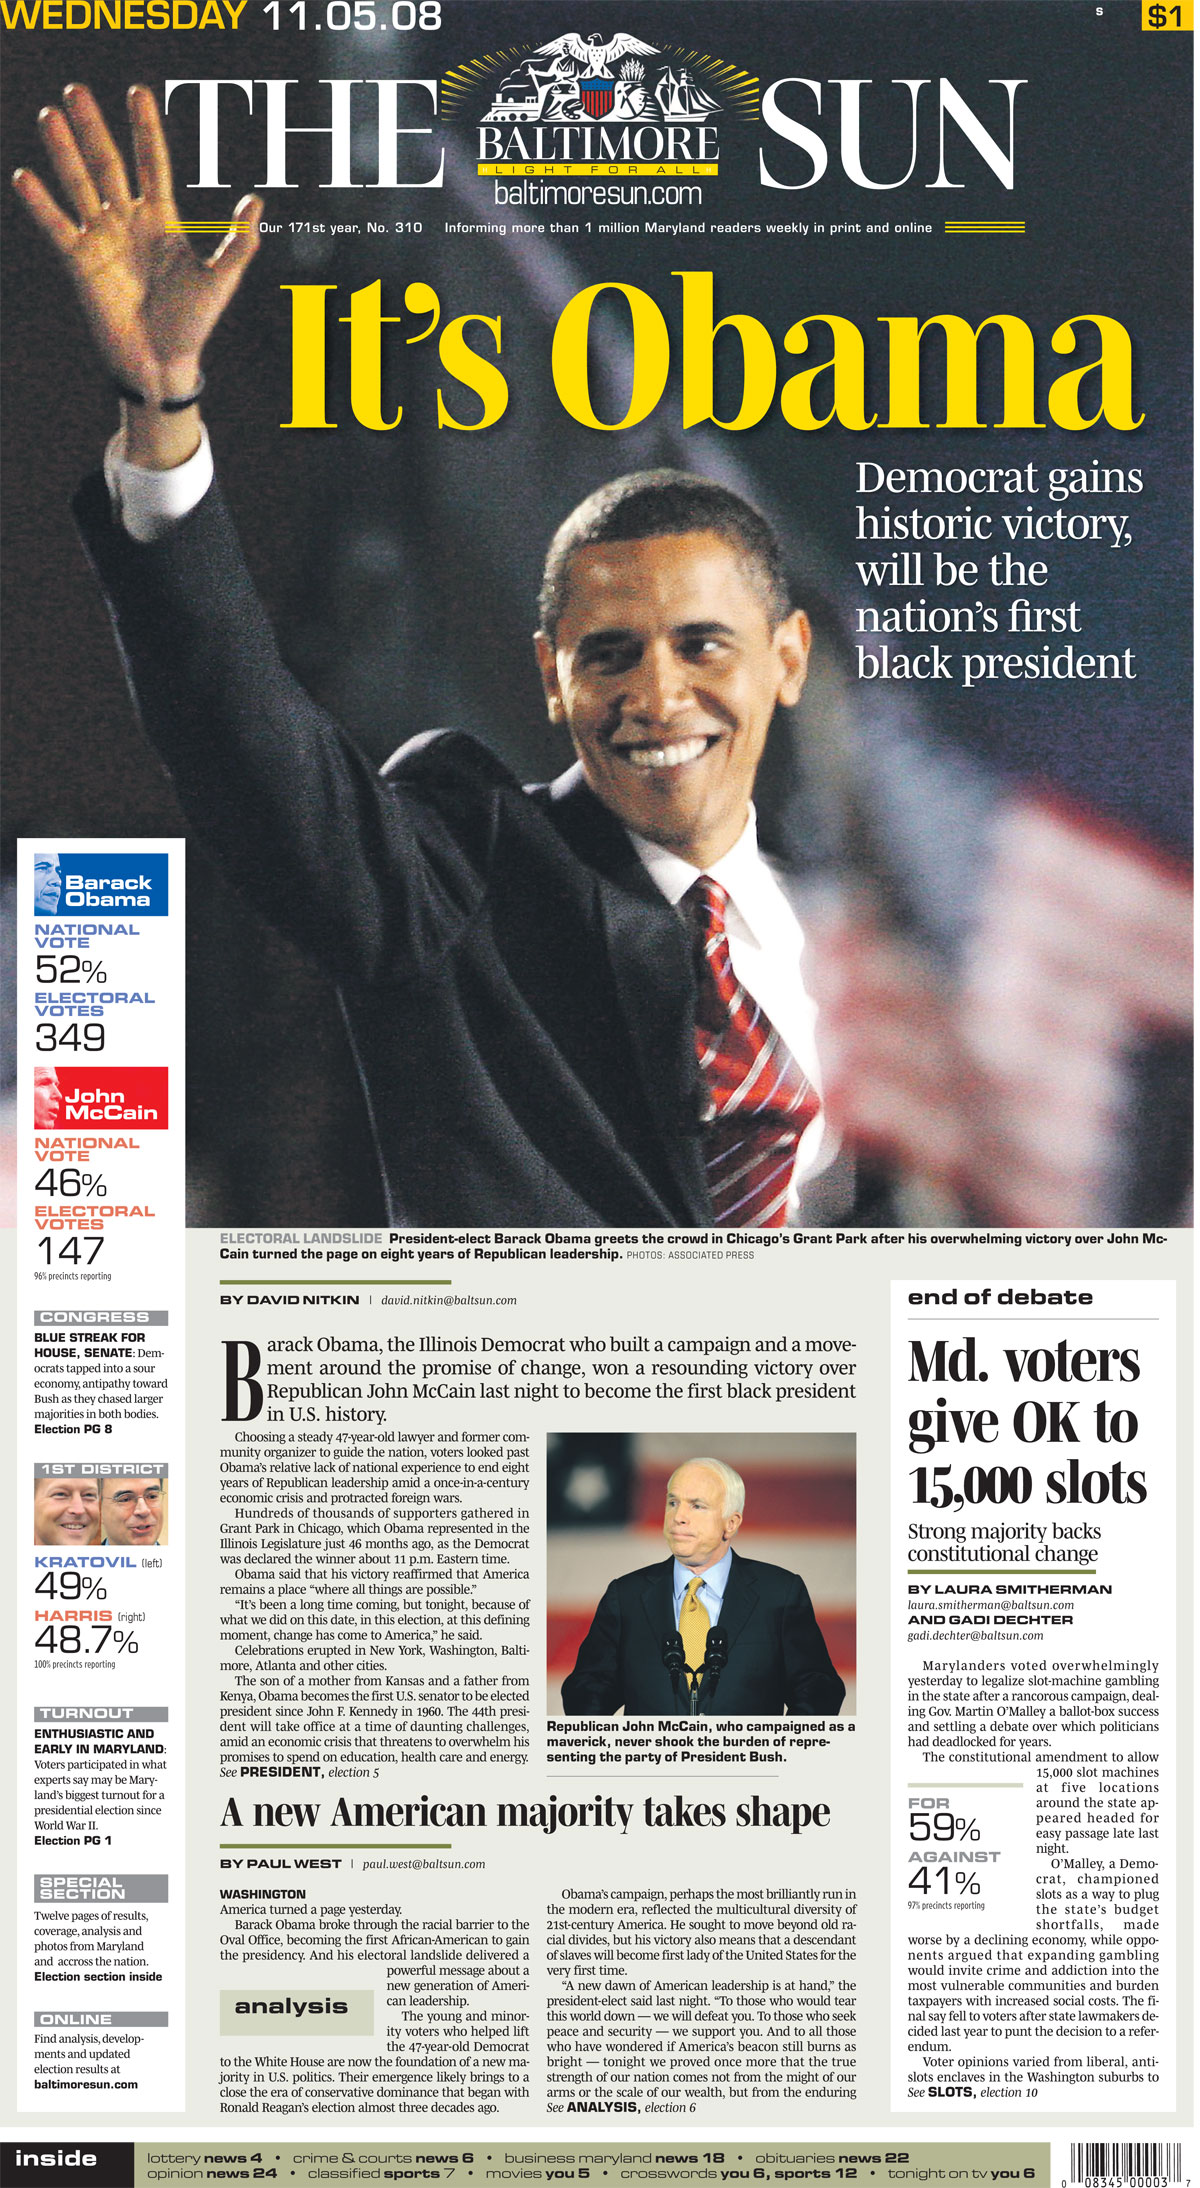 Sun front pages of U.S. presidential elections dating back to 1900